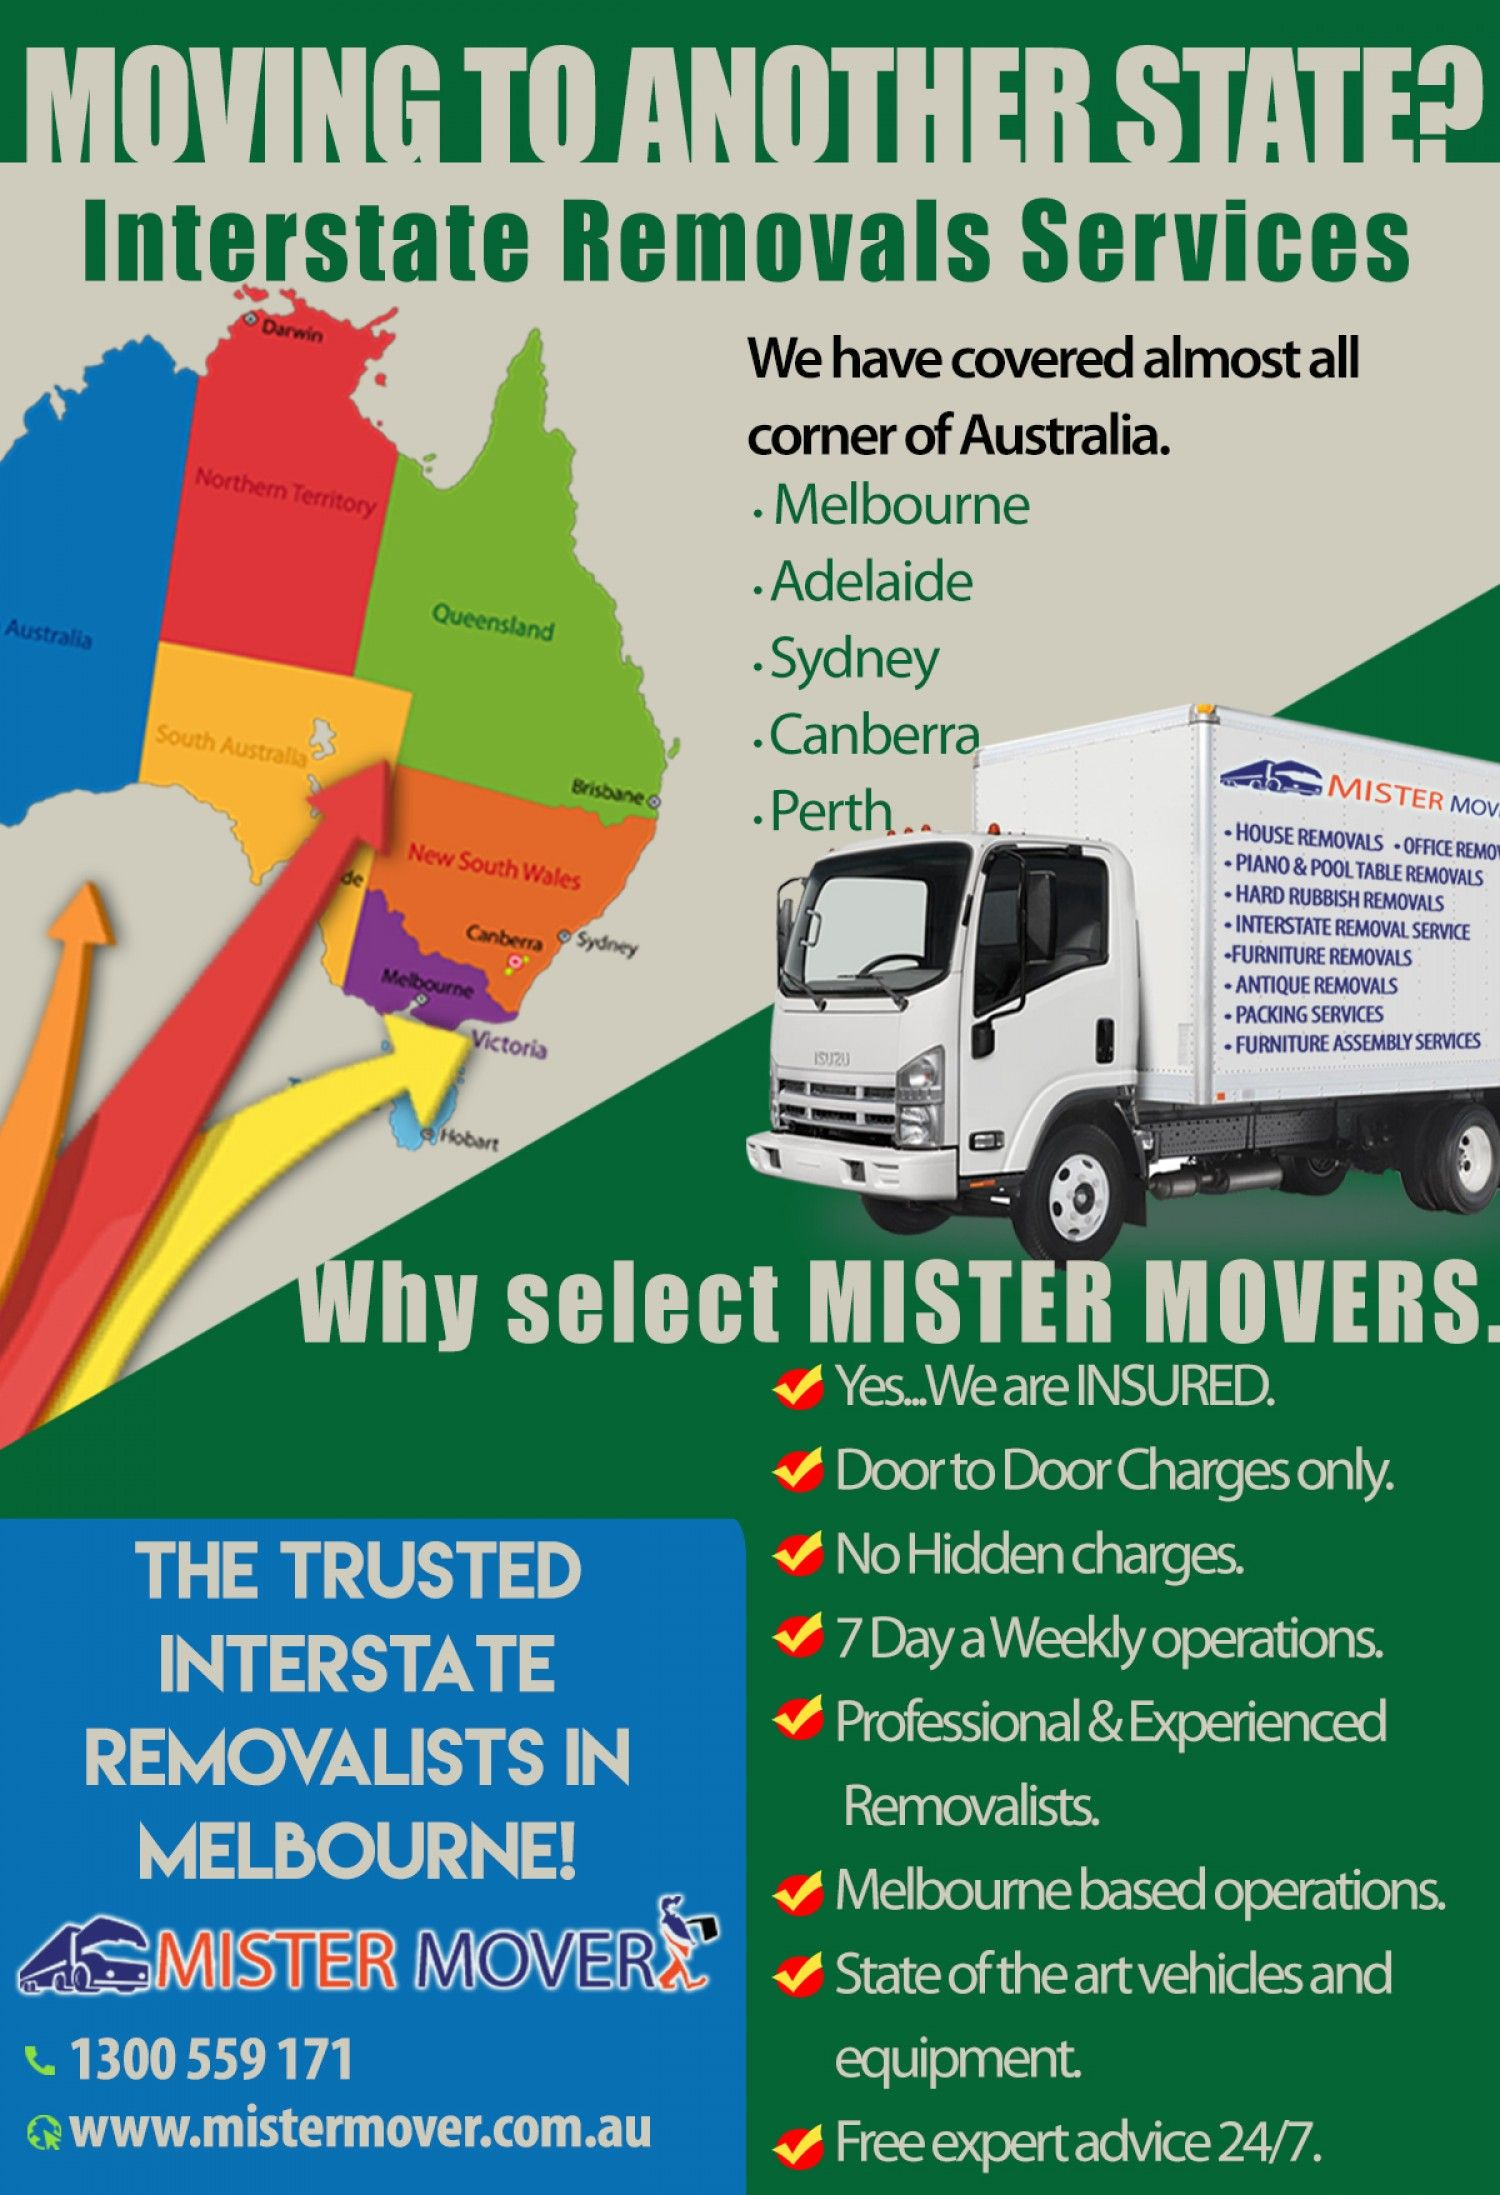 Mister Mover Mistermover On Pinterest